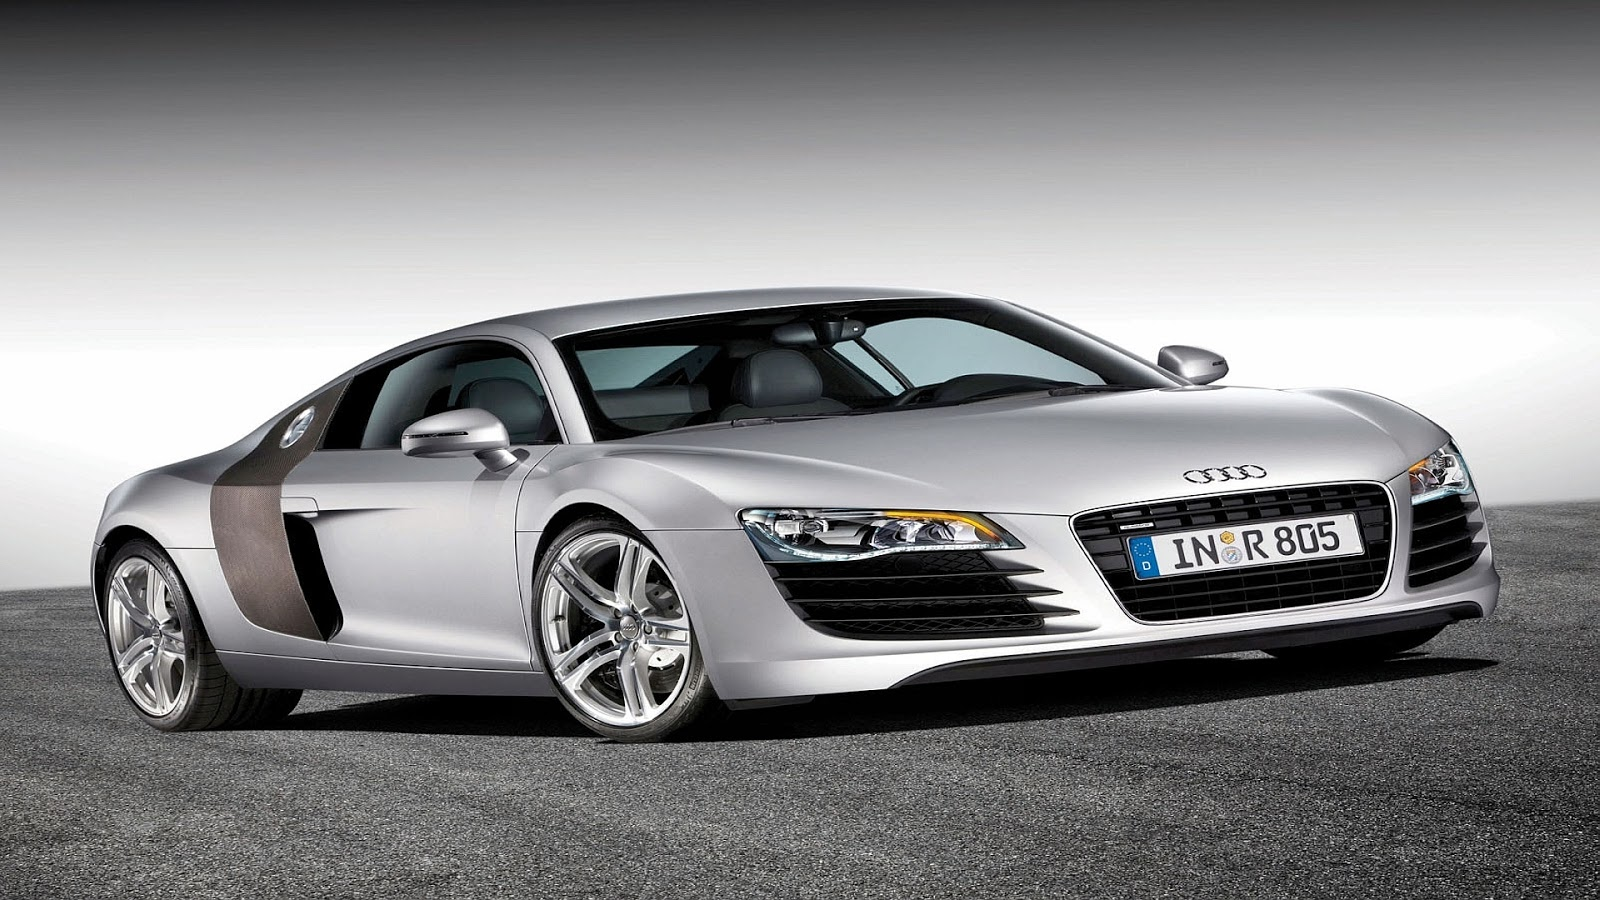 Exotic Cars Wallpapers 2007 audi r8 muscle car Wallpaperjpg 1600x900